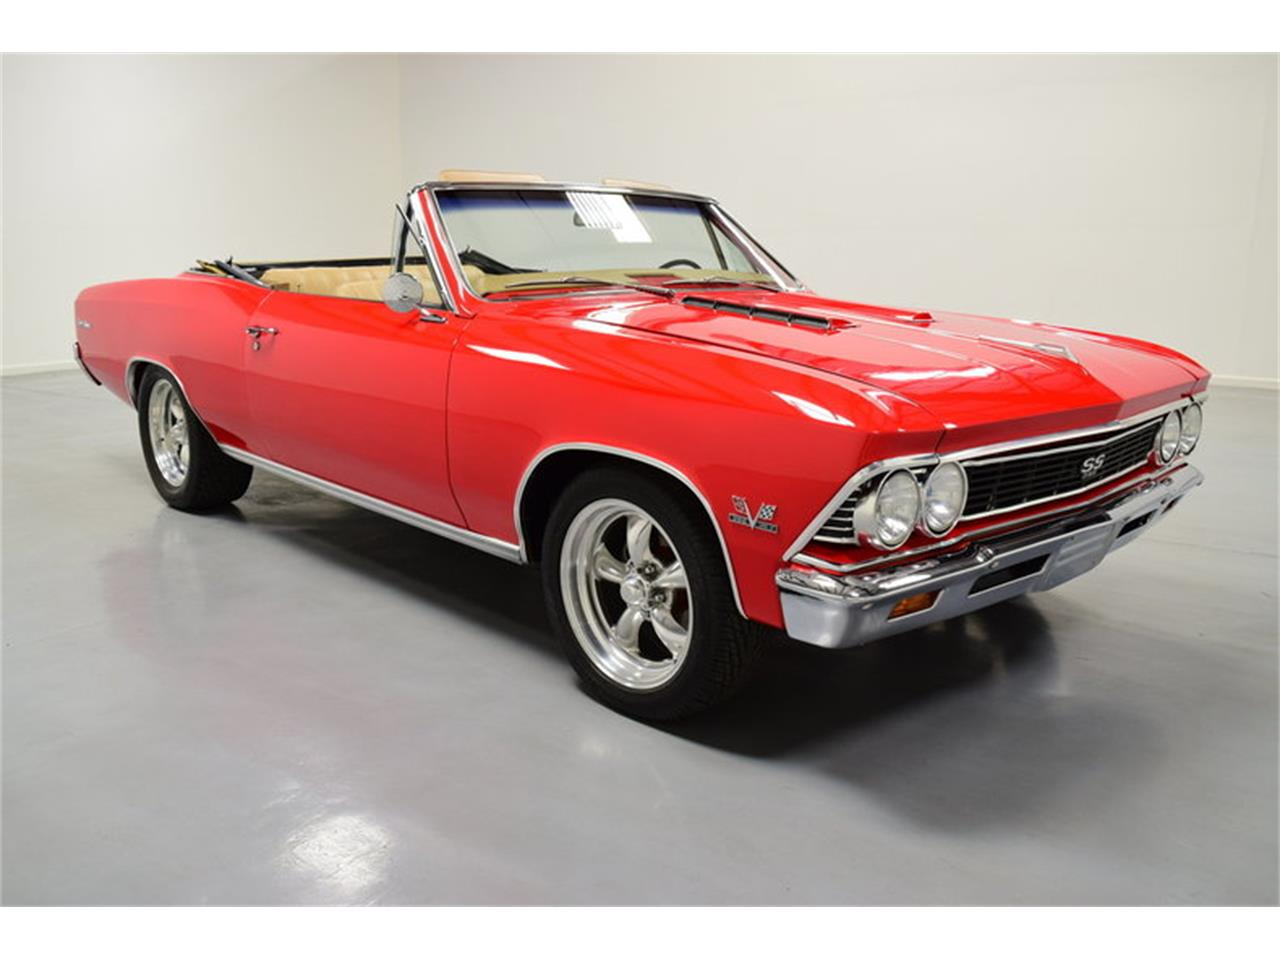 1966 Chevrolet Chevelle For Sale Cc 1105176 Bel Air Value Large Picture Of 66 Norc